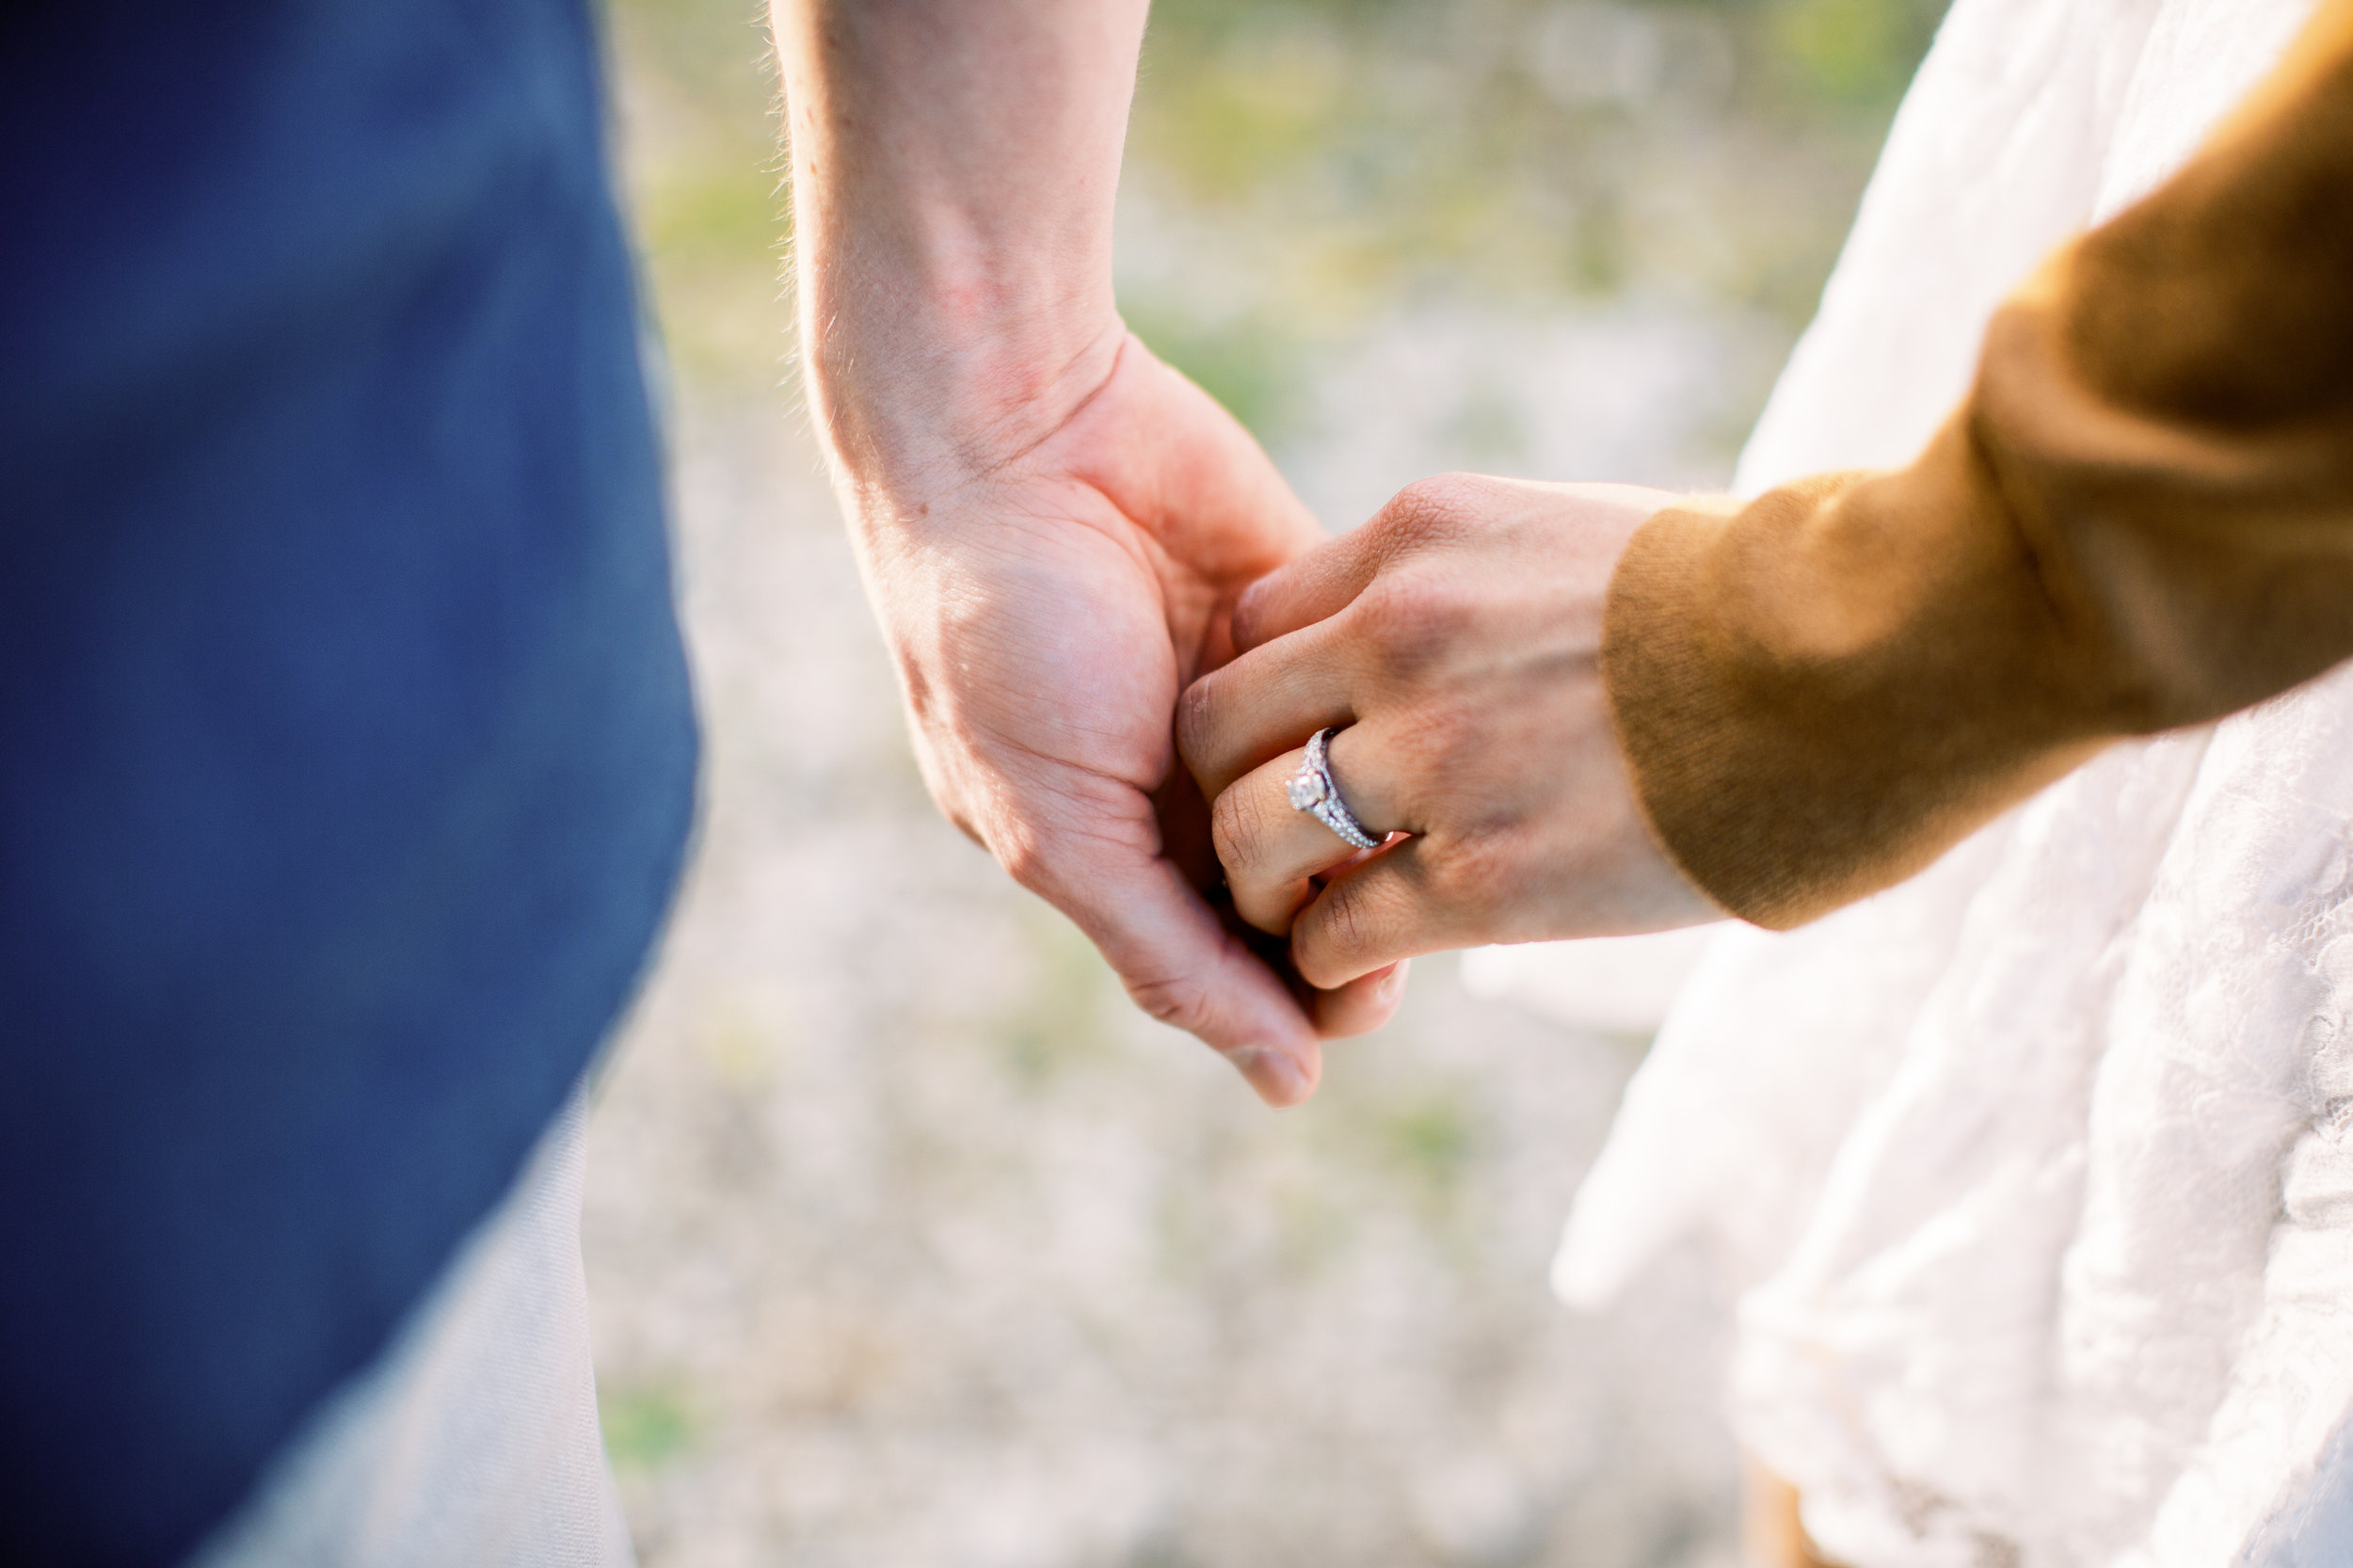 Ian_Sarah_Engagement_Knoxville_Abigail_malone_Photography-19.jpg